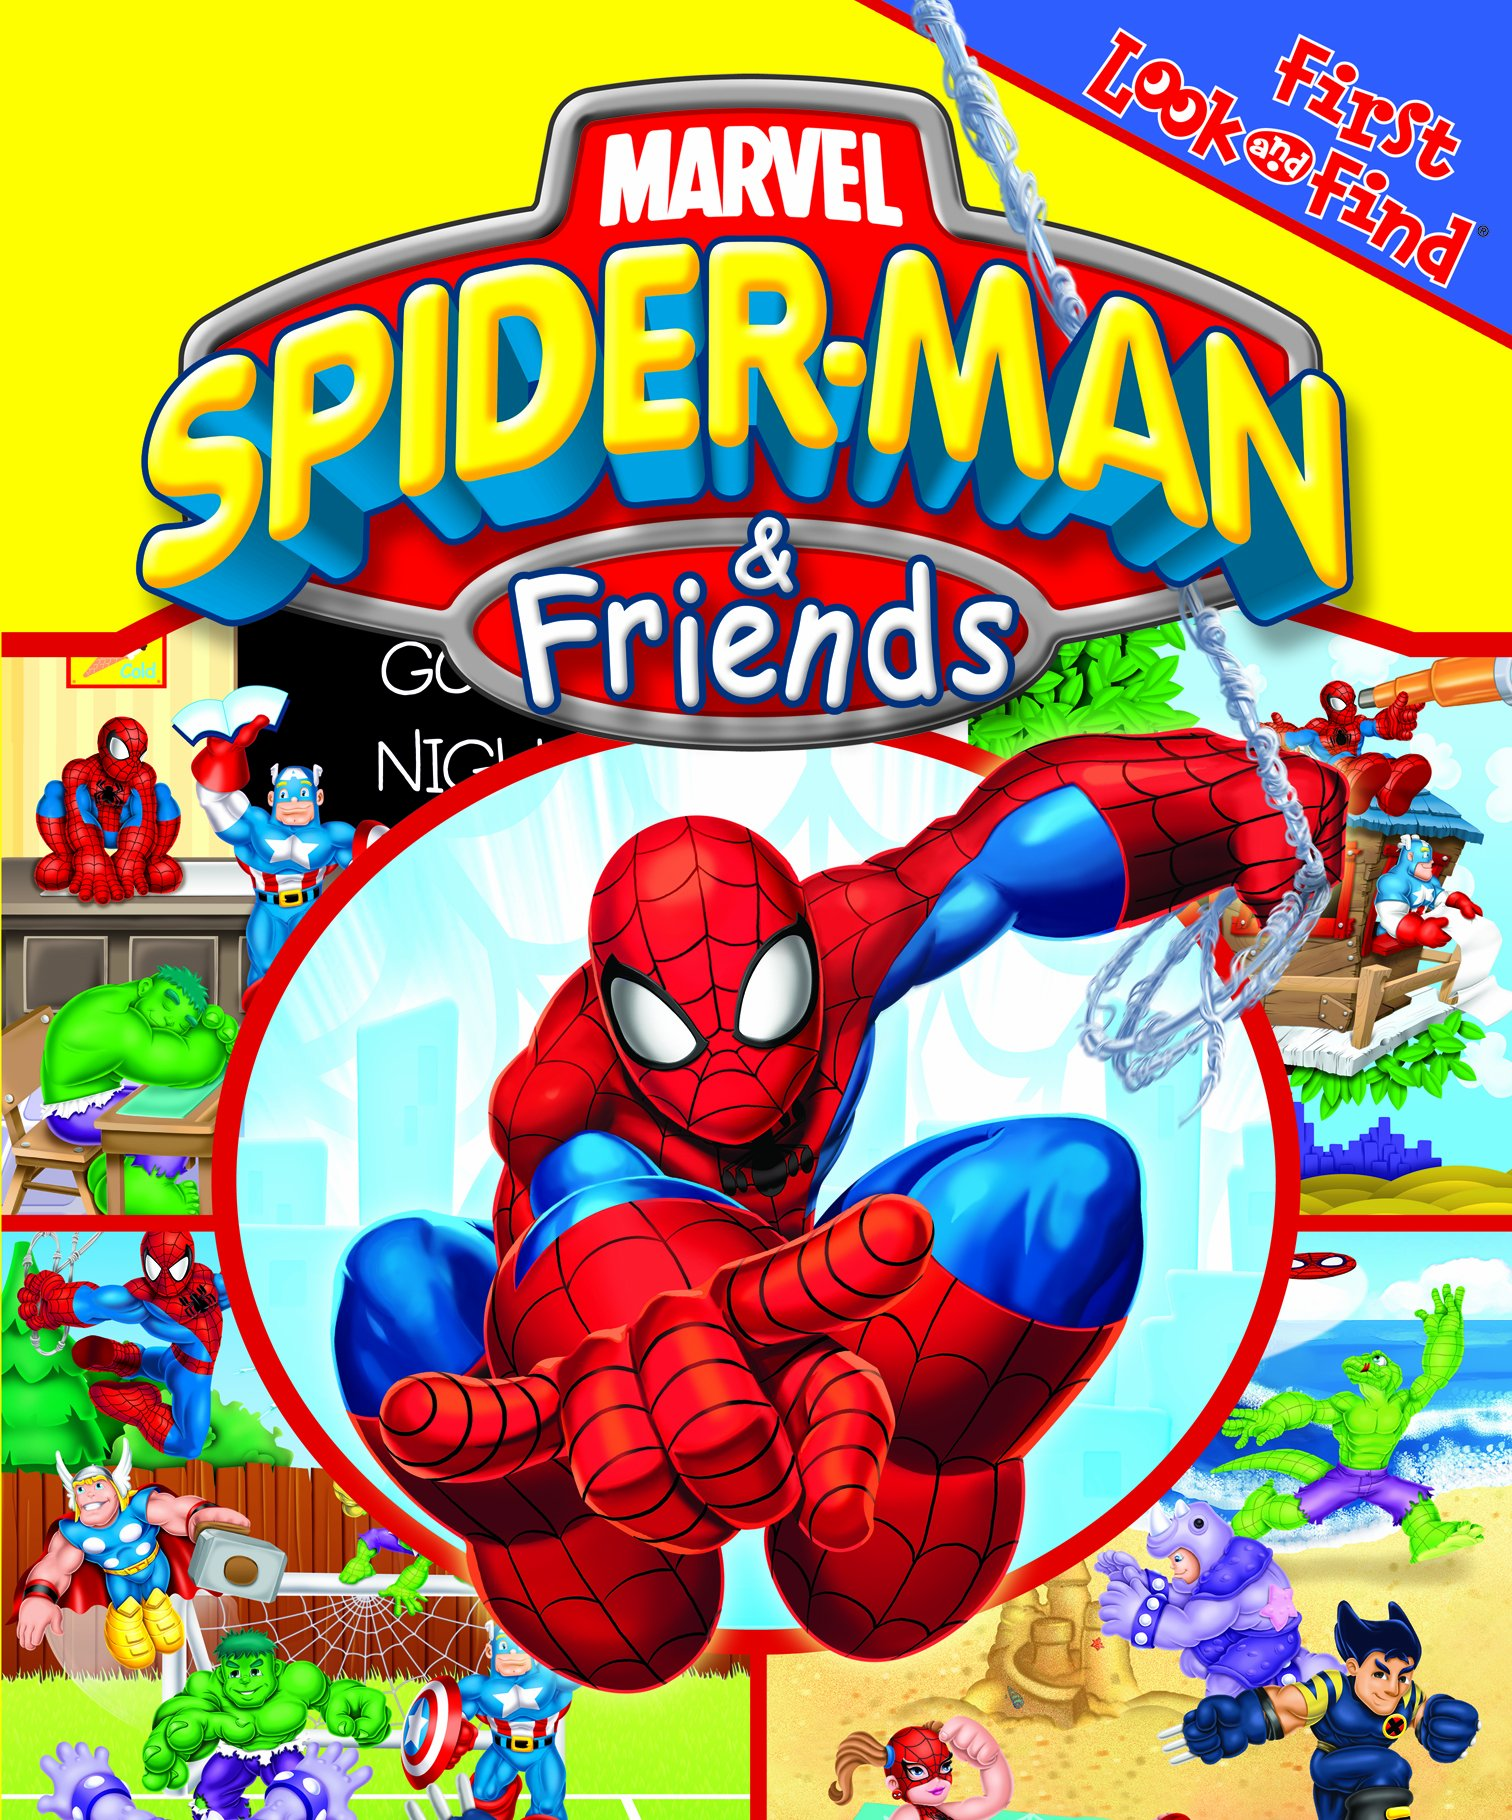 Spiderman and friends bedding - First Look And Find Marvel Spider Man Friends Editors Of Publications International Ltd 9781412777704 Amazon Com Books